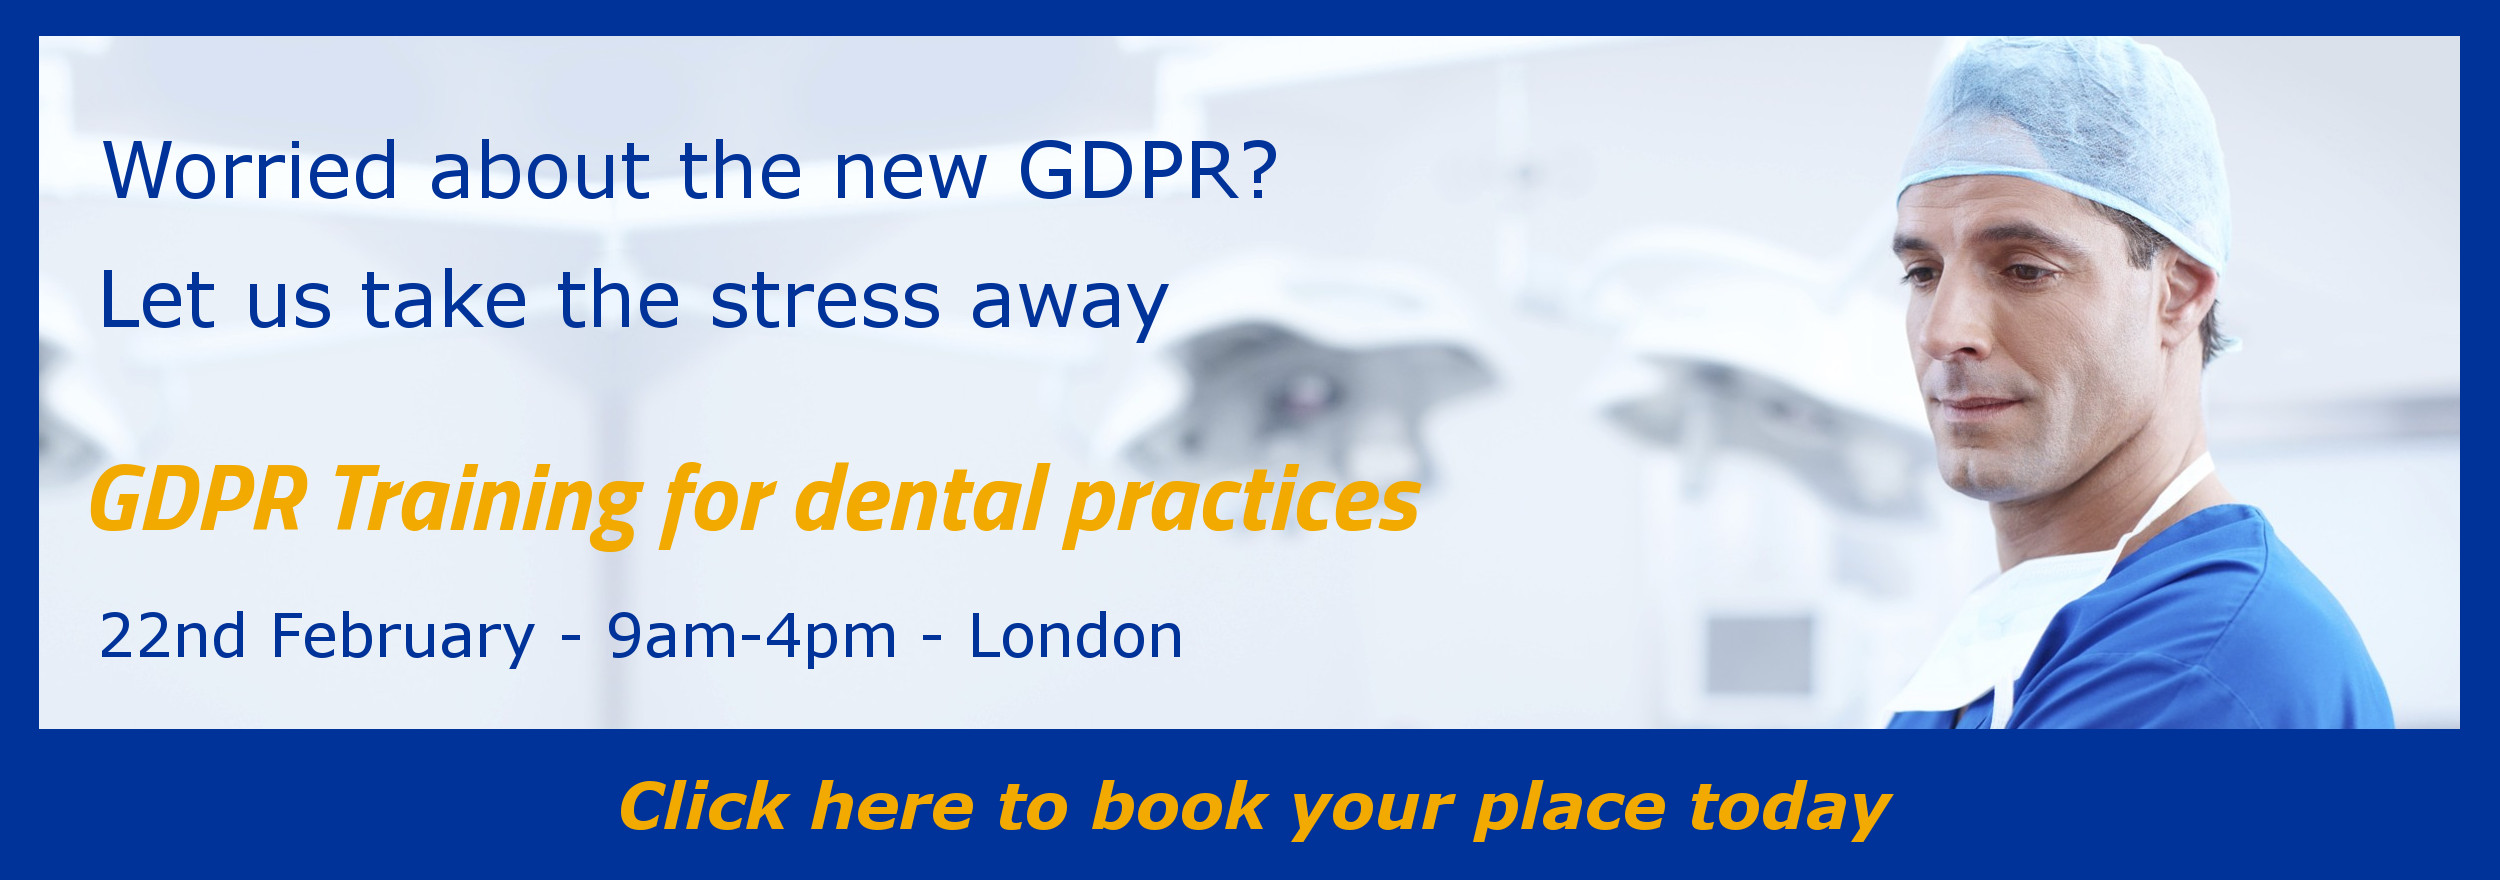 GDPR Training for Dental Practices